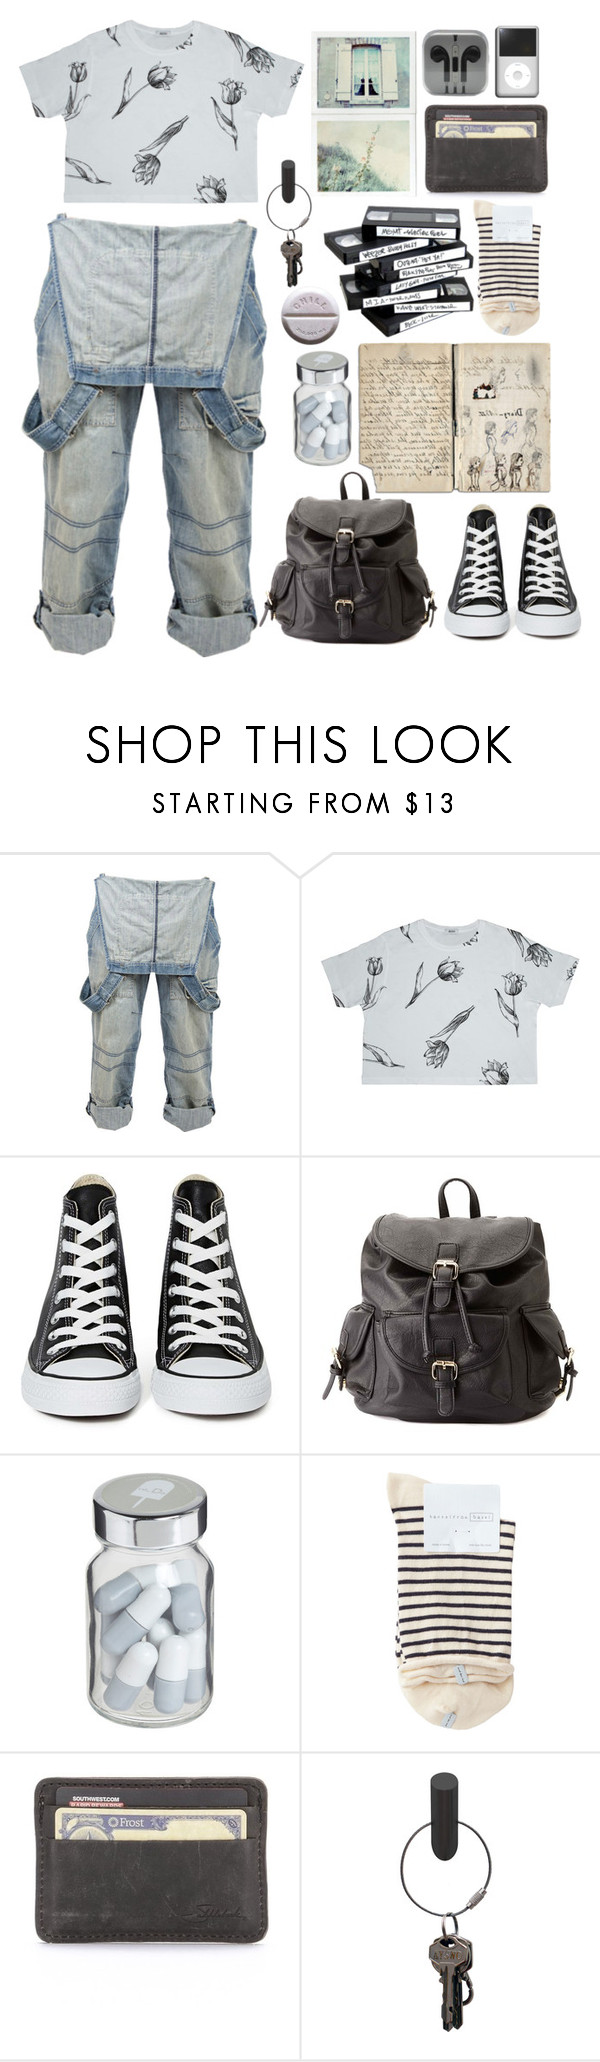 """""""Roll Back The Clock"""" by daizydreamer ❤ liked on Polyvore featuring Crafted, Bundy & Webster, Converse, Charlotte Russe, Vita, Hansel from Basel and PA Design"""